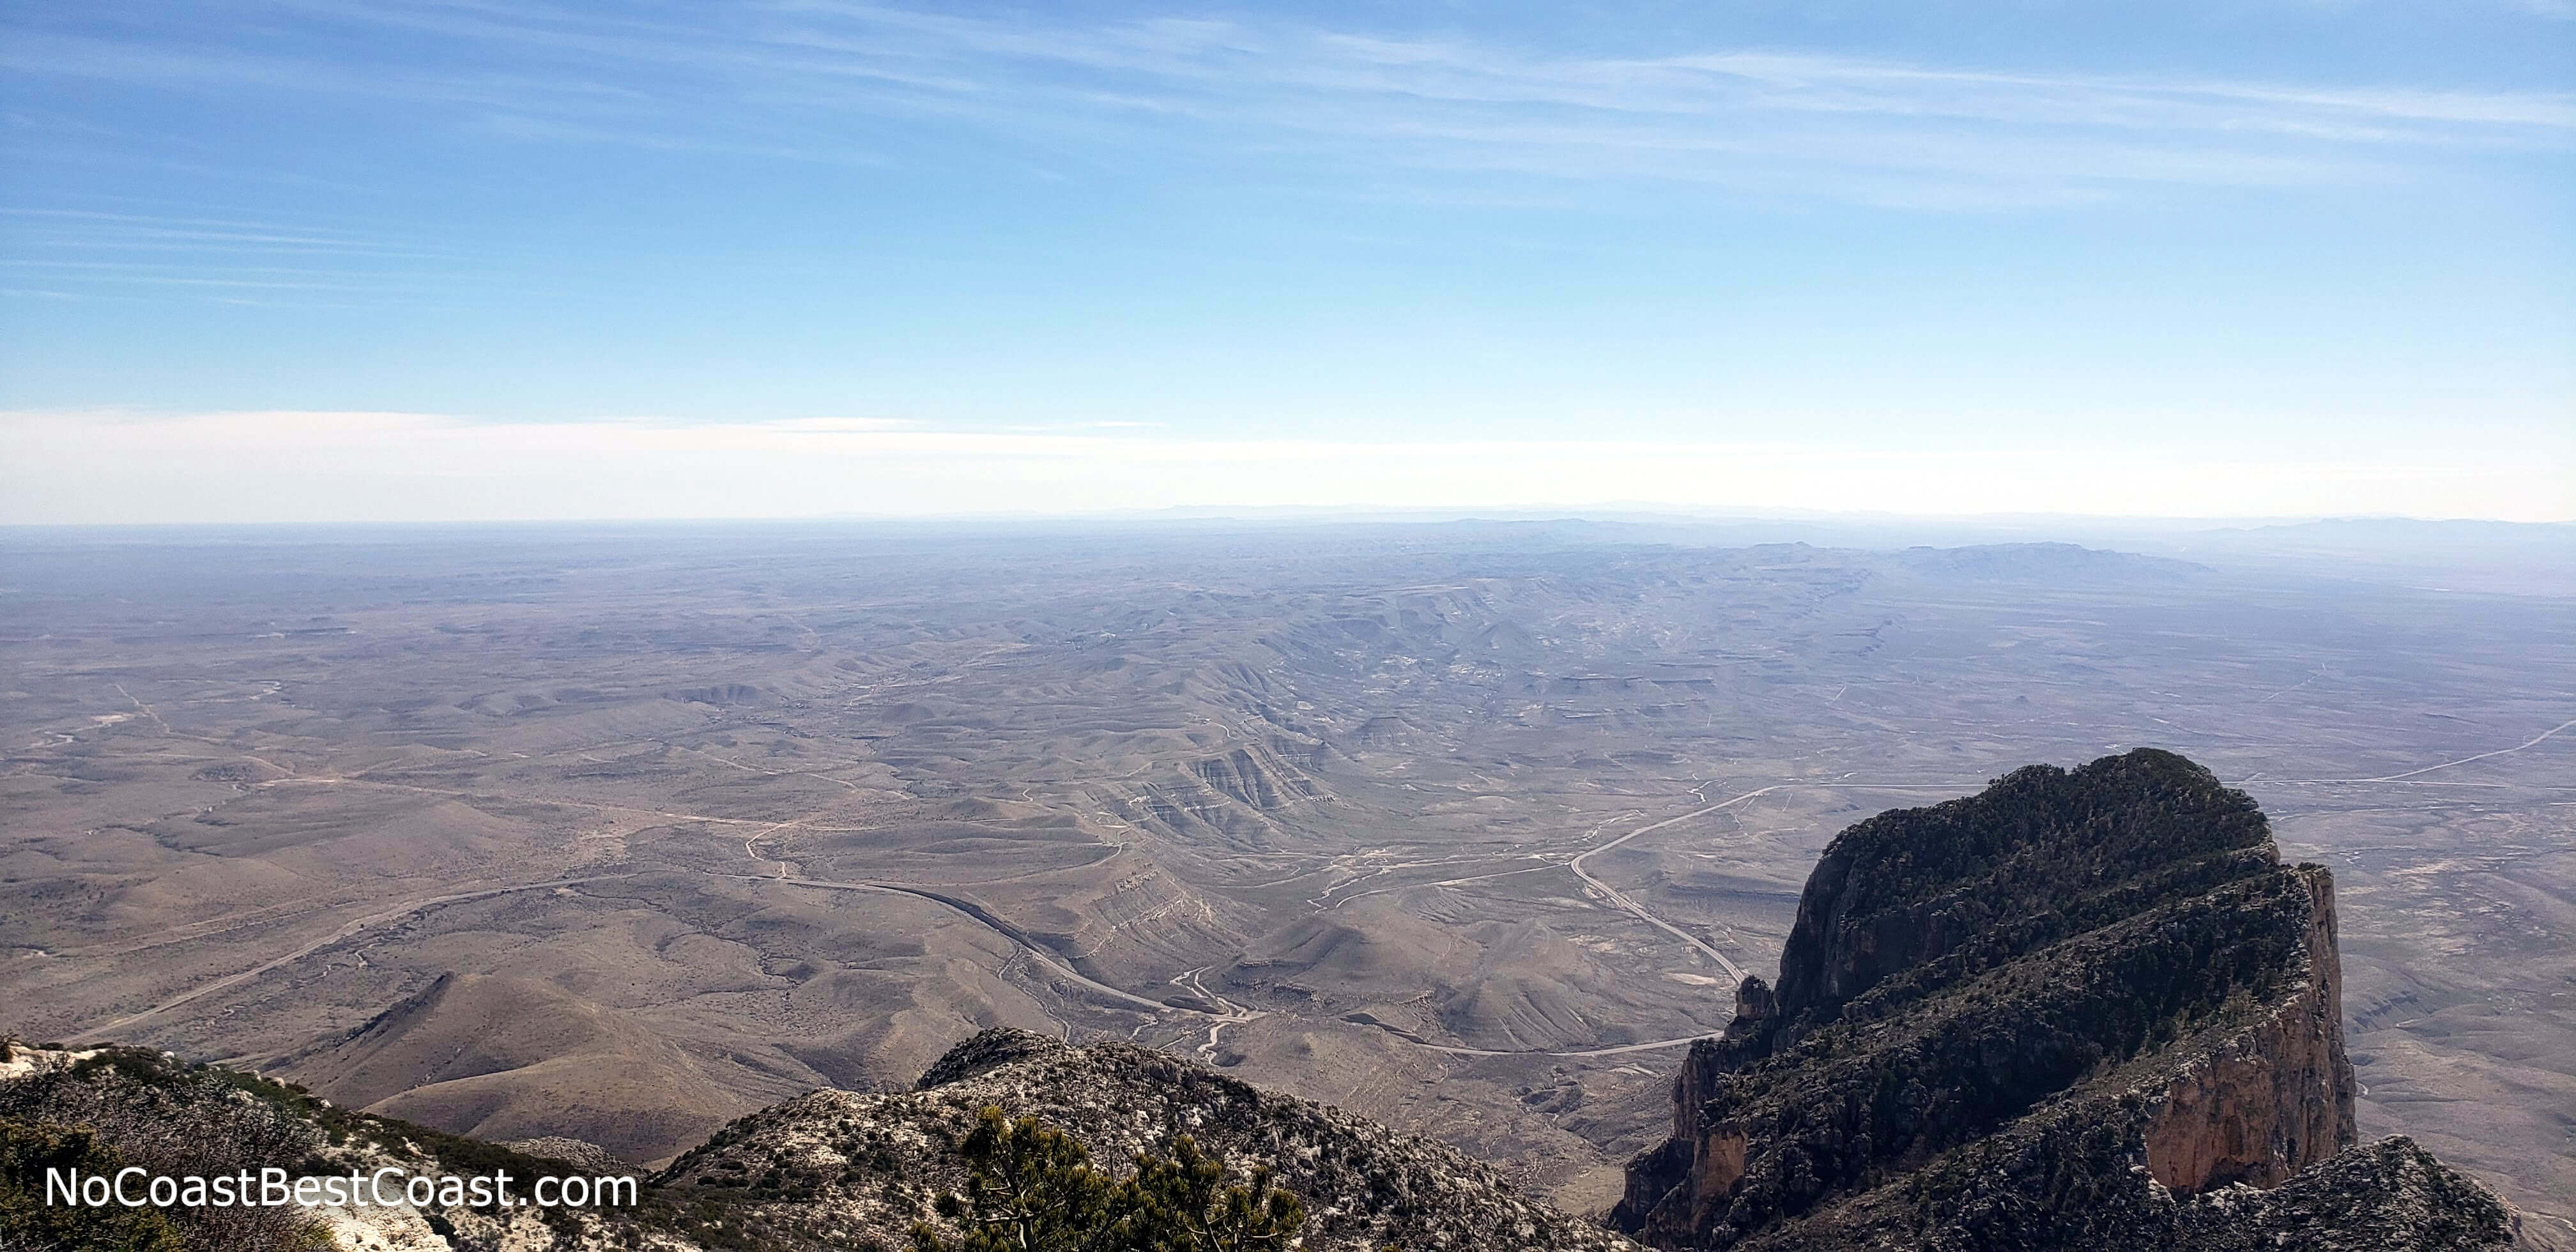 El Capitan and the Chihuahuan Desert extending into Mexico